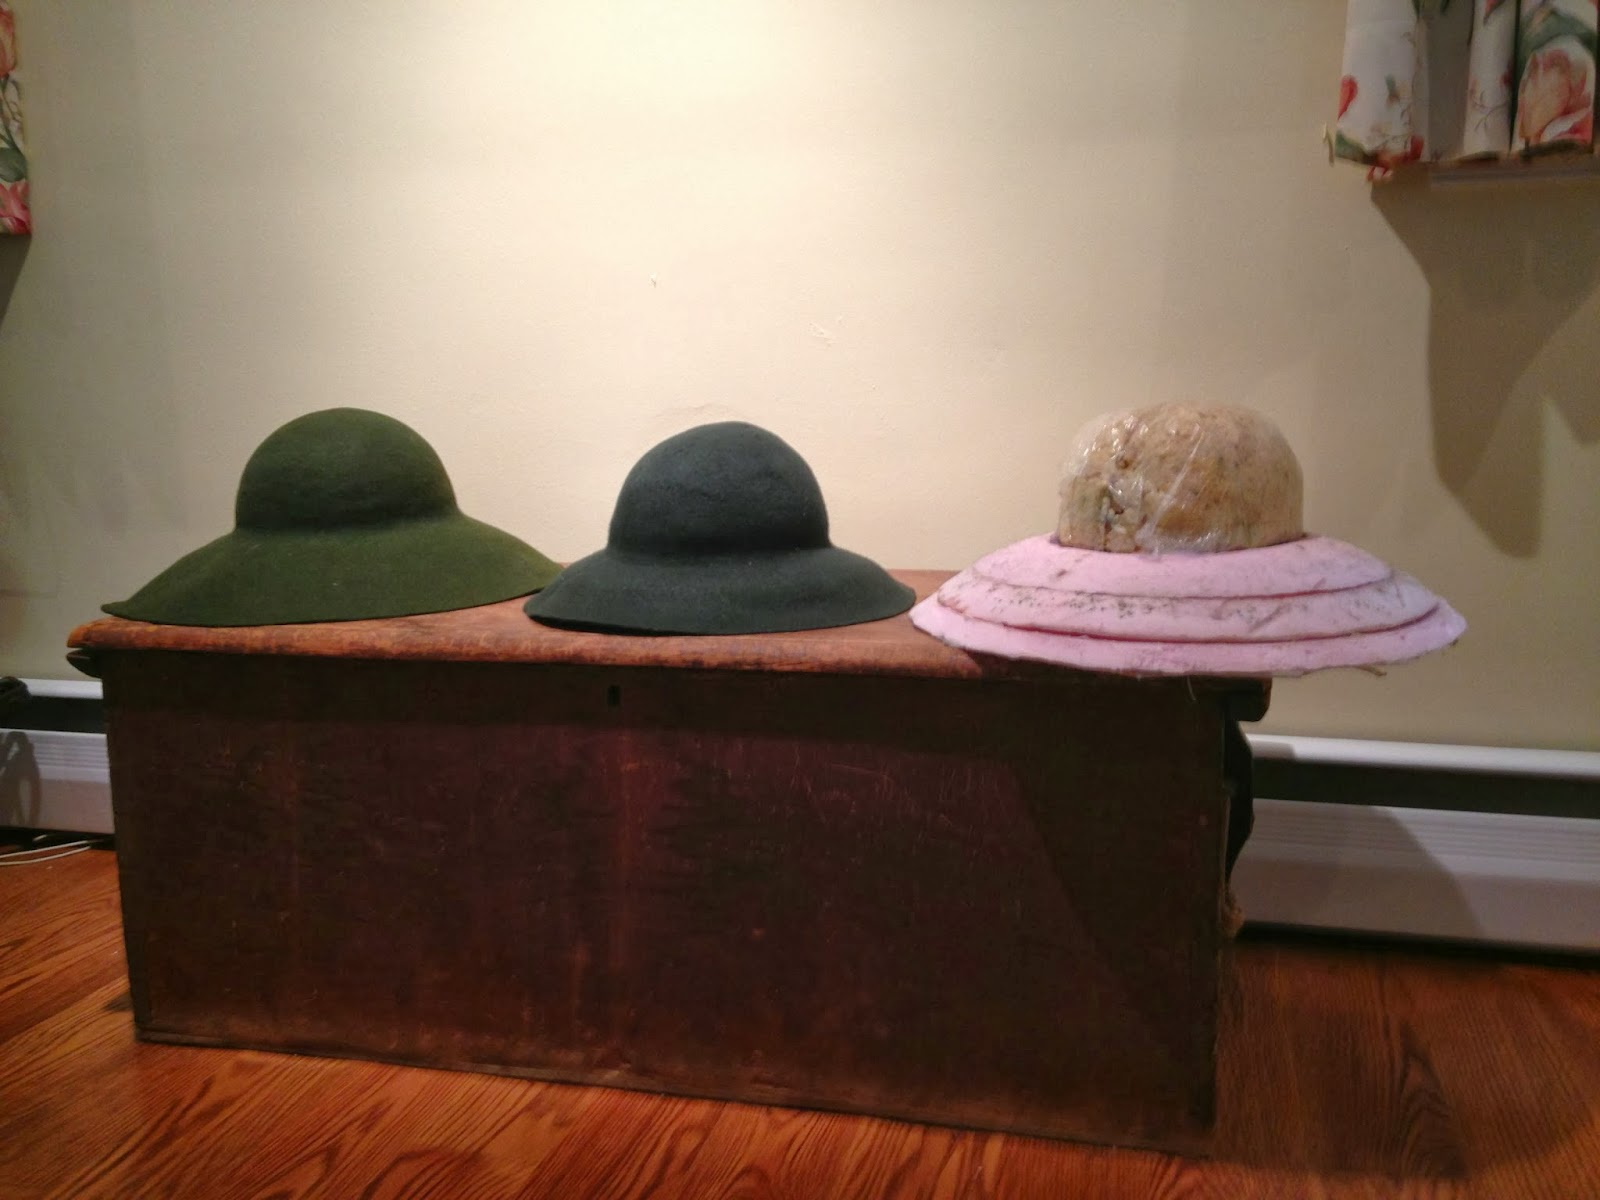 6193eb52b5b Here is what I have learned about hatmaking so far.